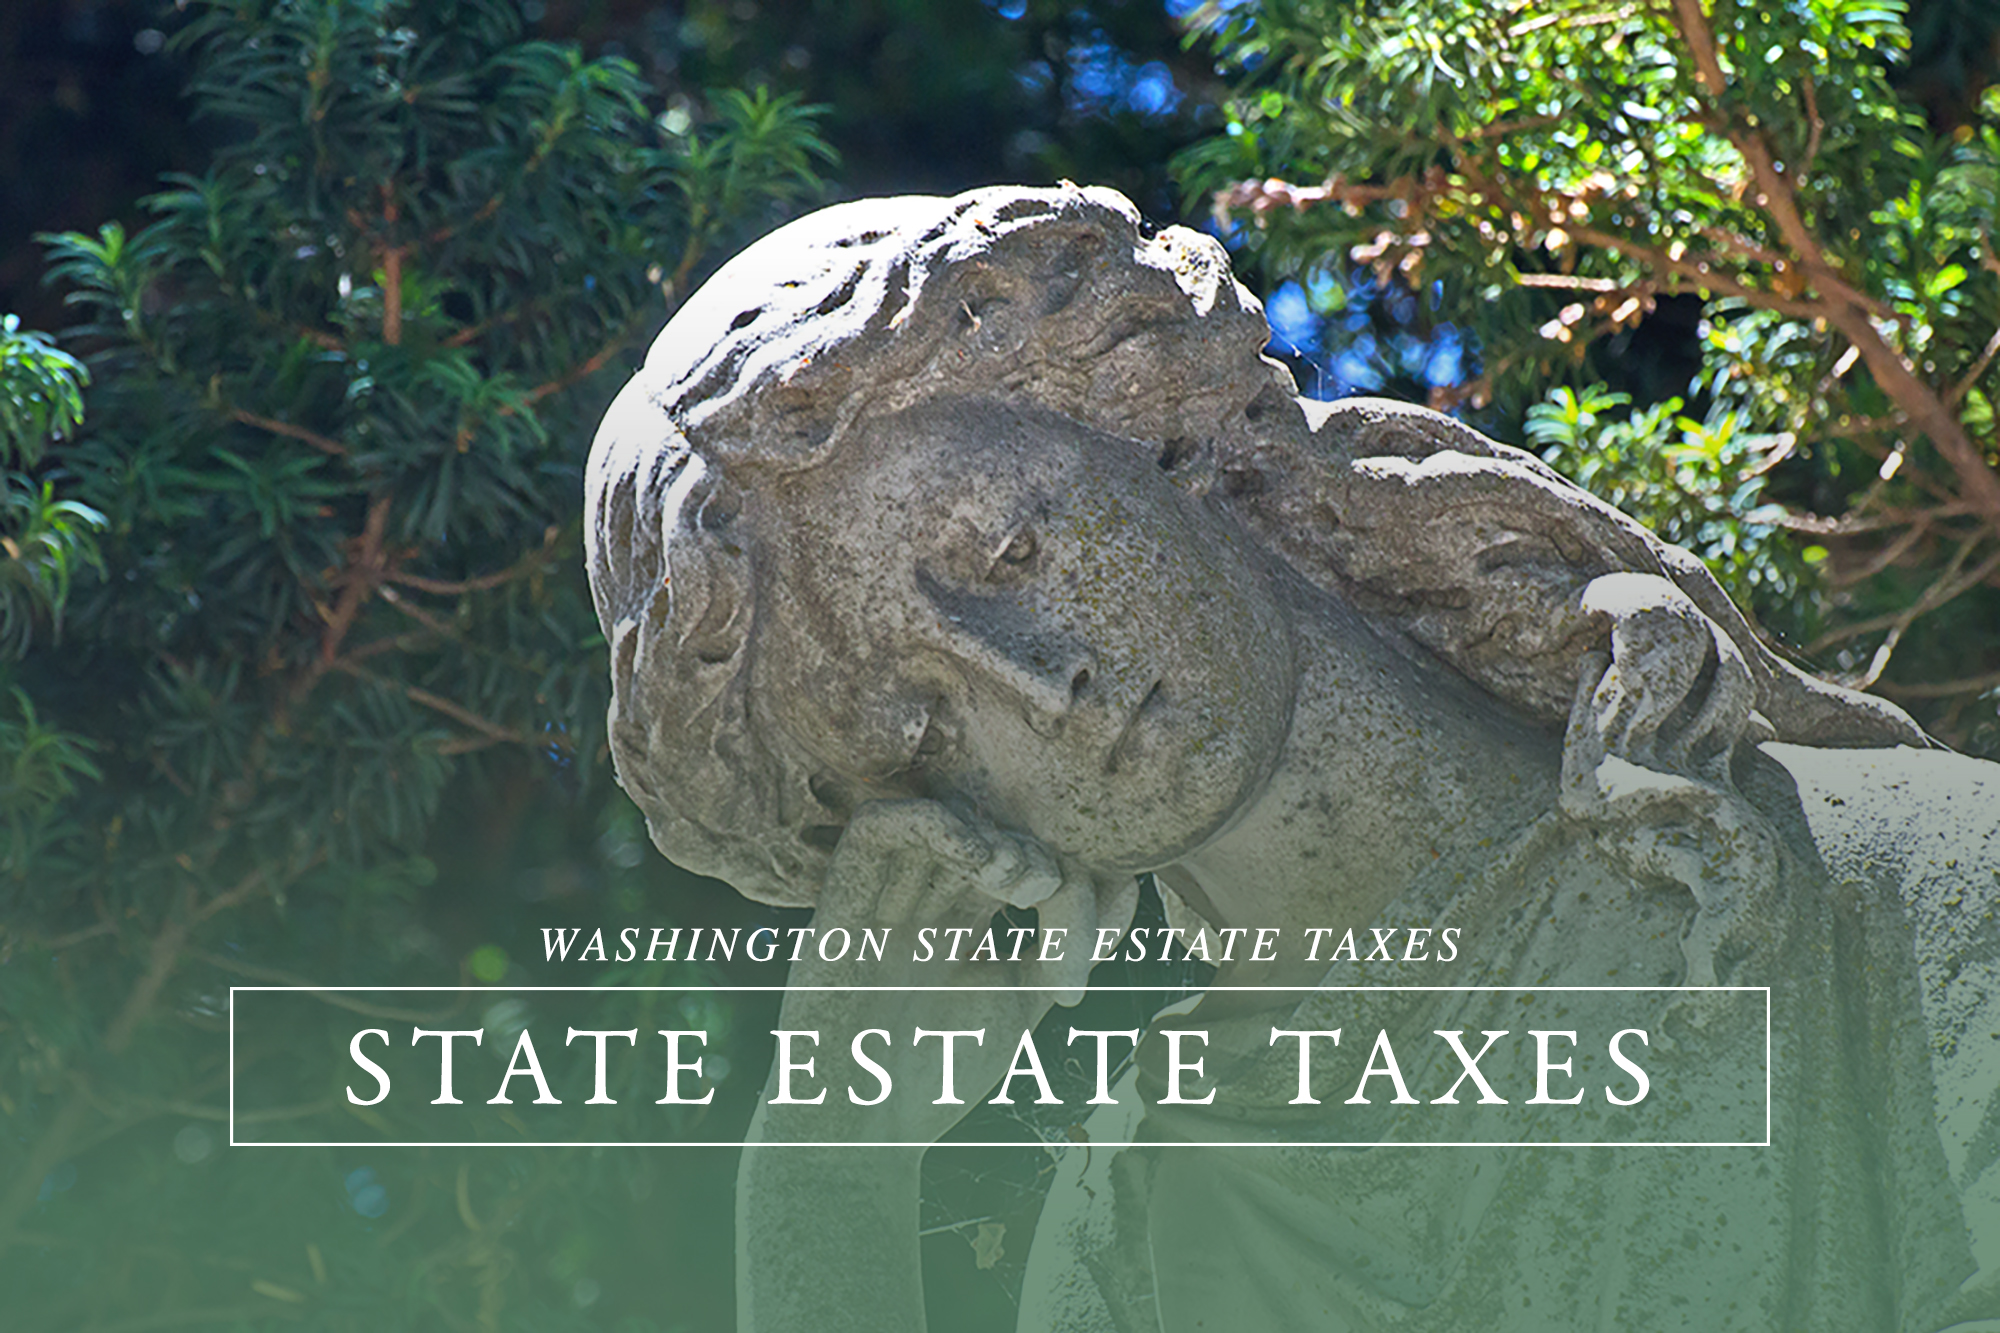 Washington State Estate Taxes